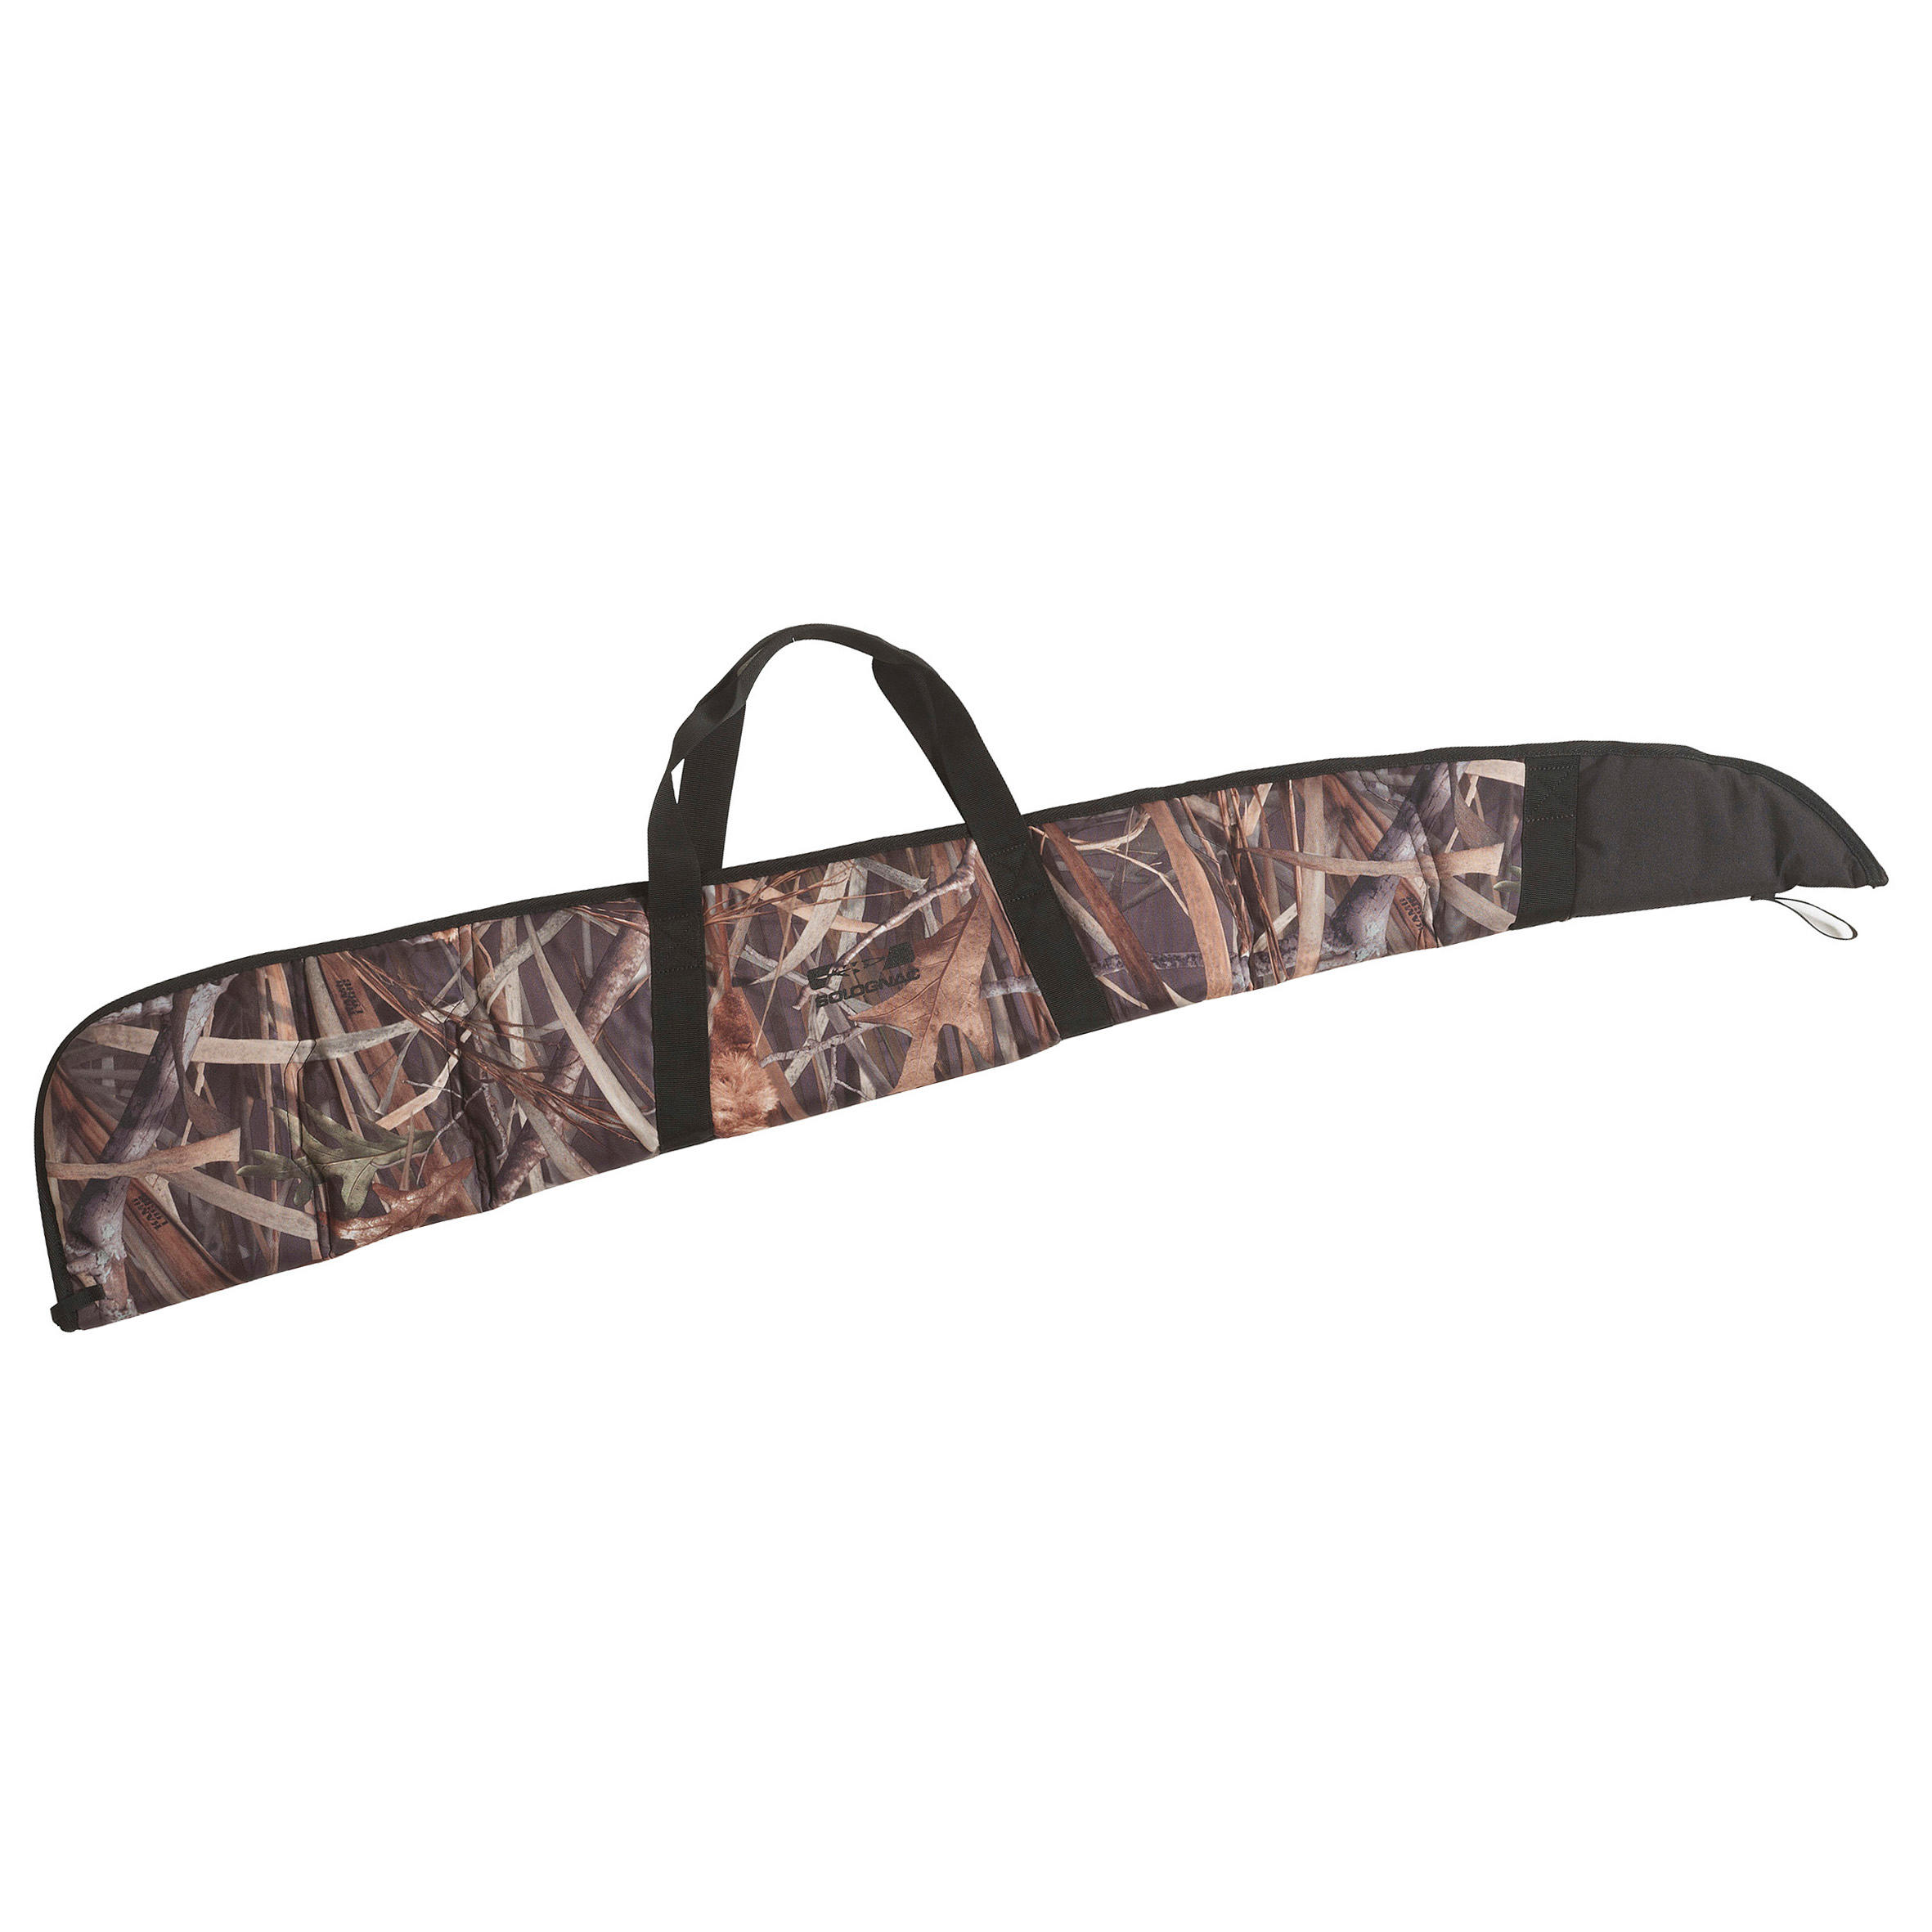 Wetland Camouflage Hunting Rifle Bag 150 cm